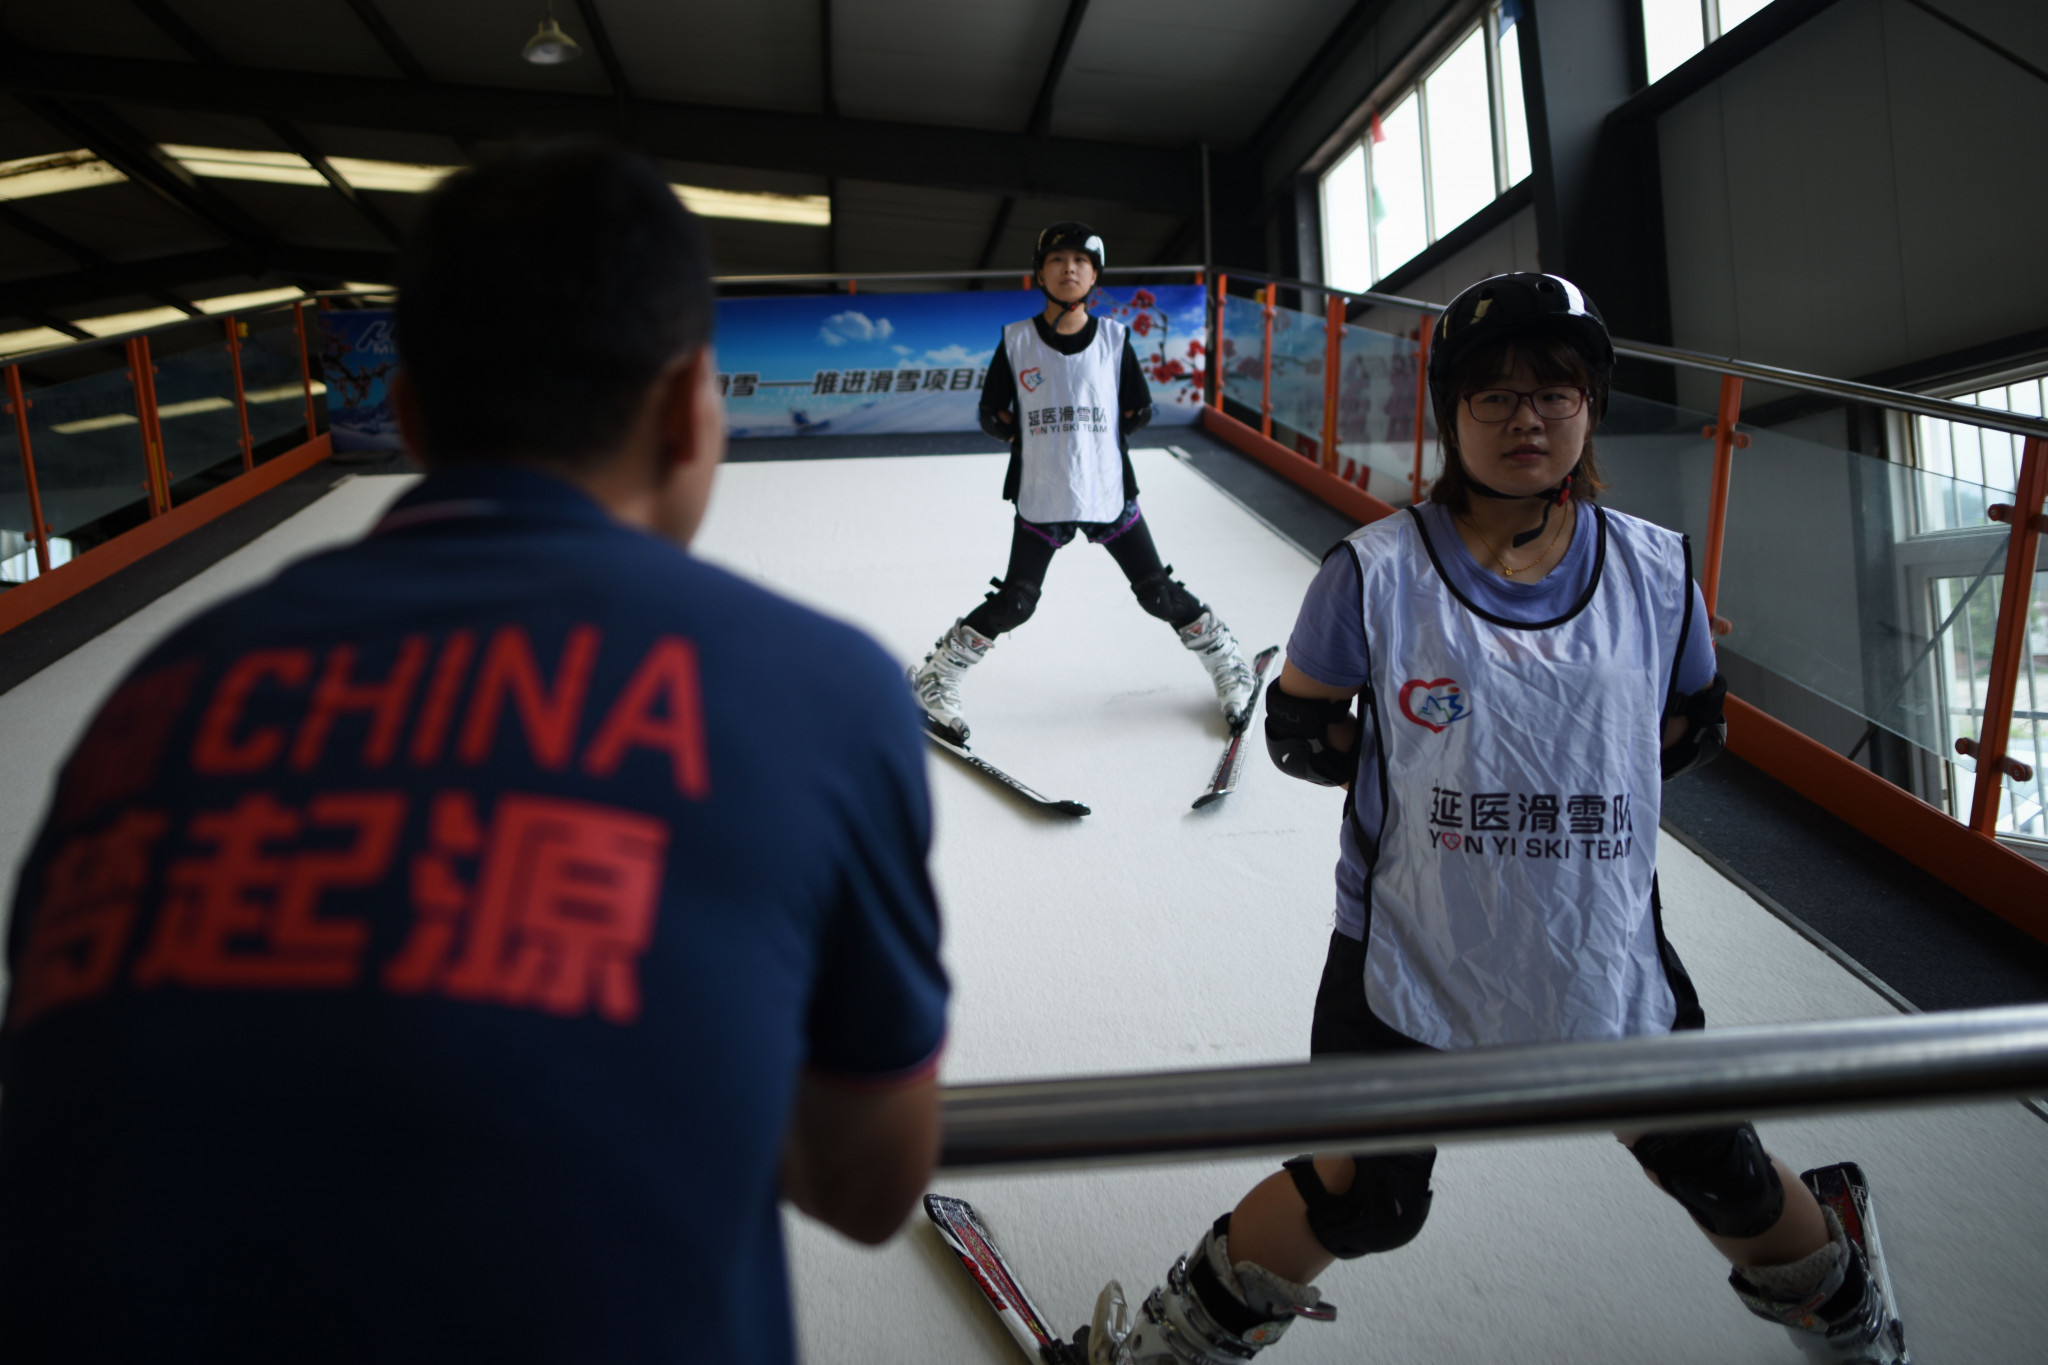 The Chinese Government has set a target of having 300 million people participating in winter sports by Beijing 2022 ©Getty Images